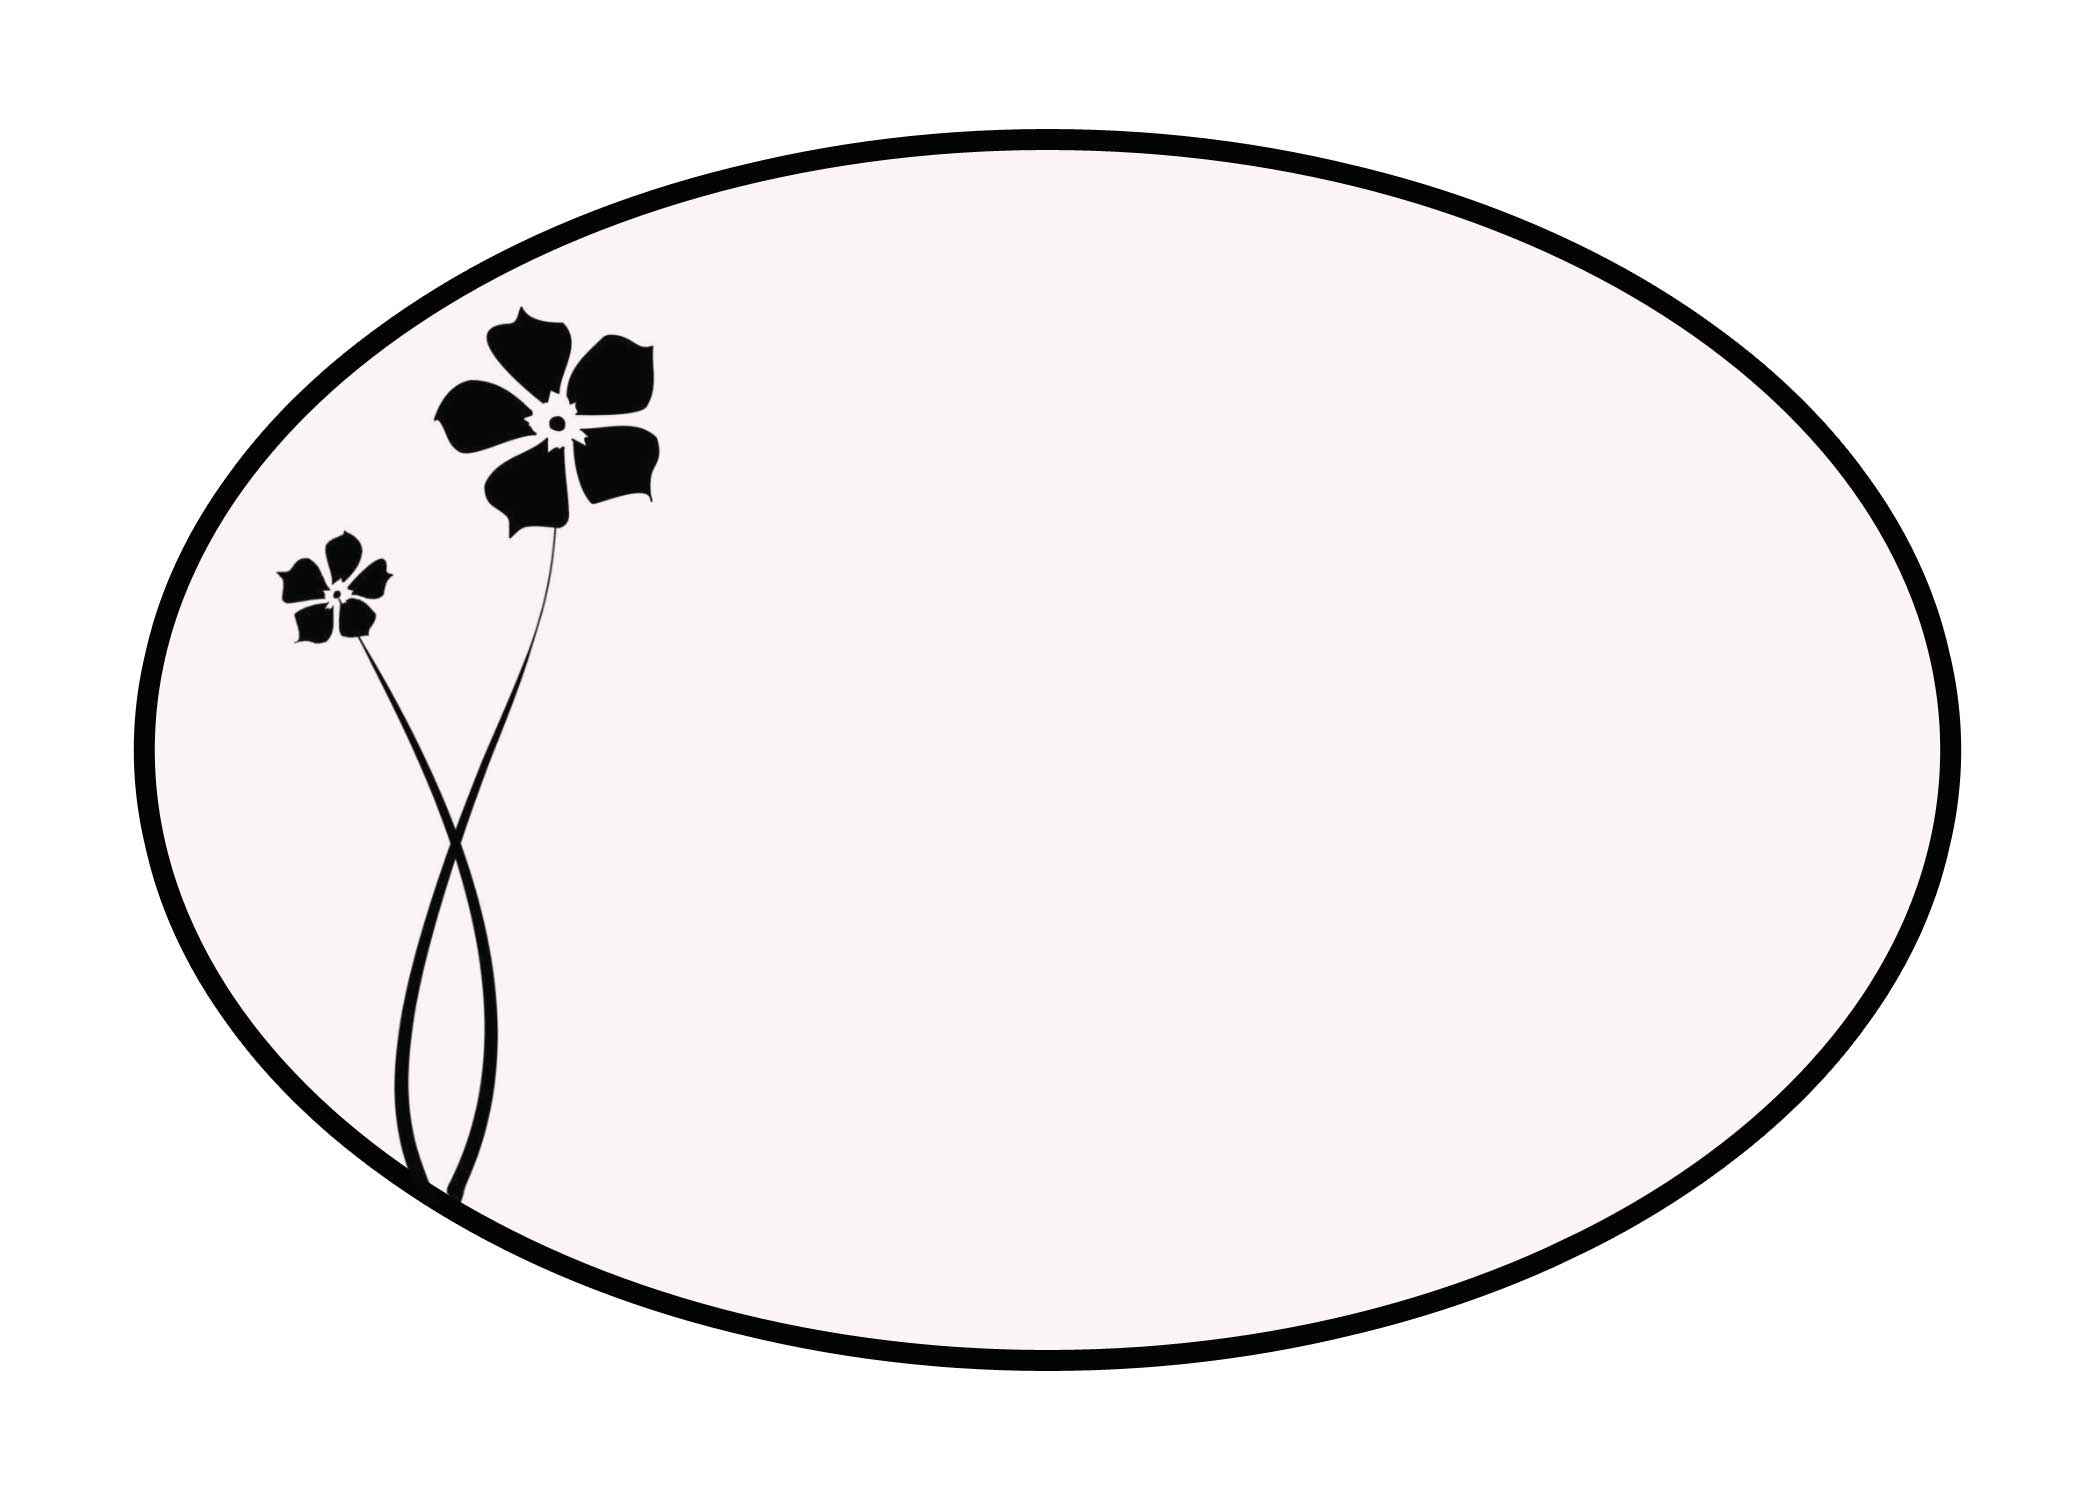 Free Printable Oval Template